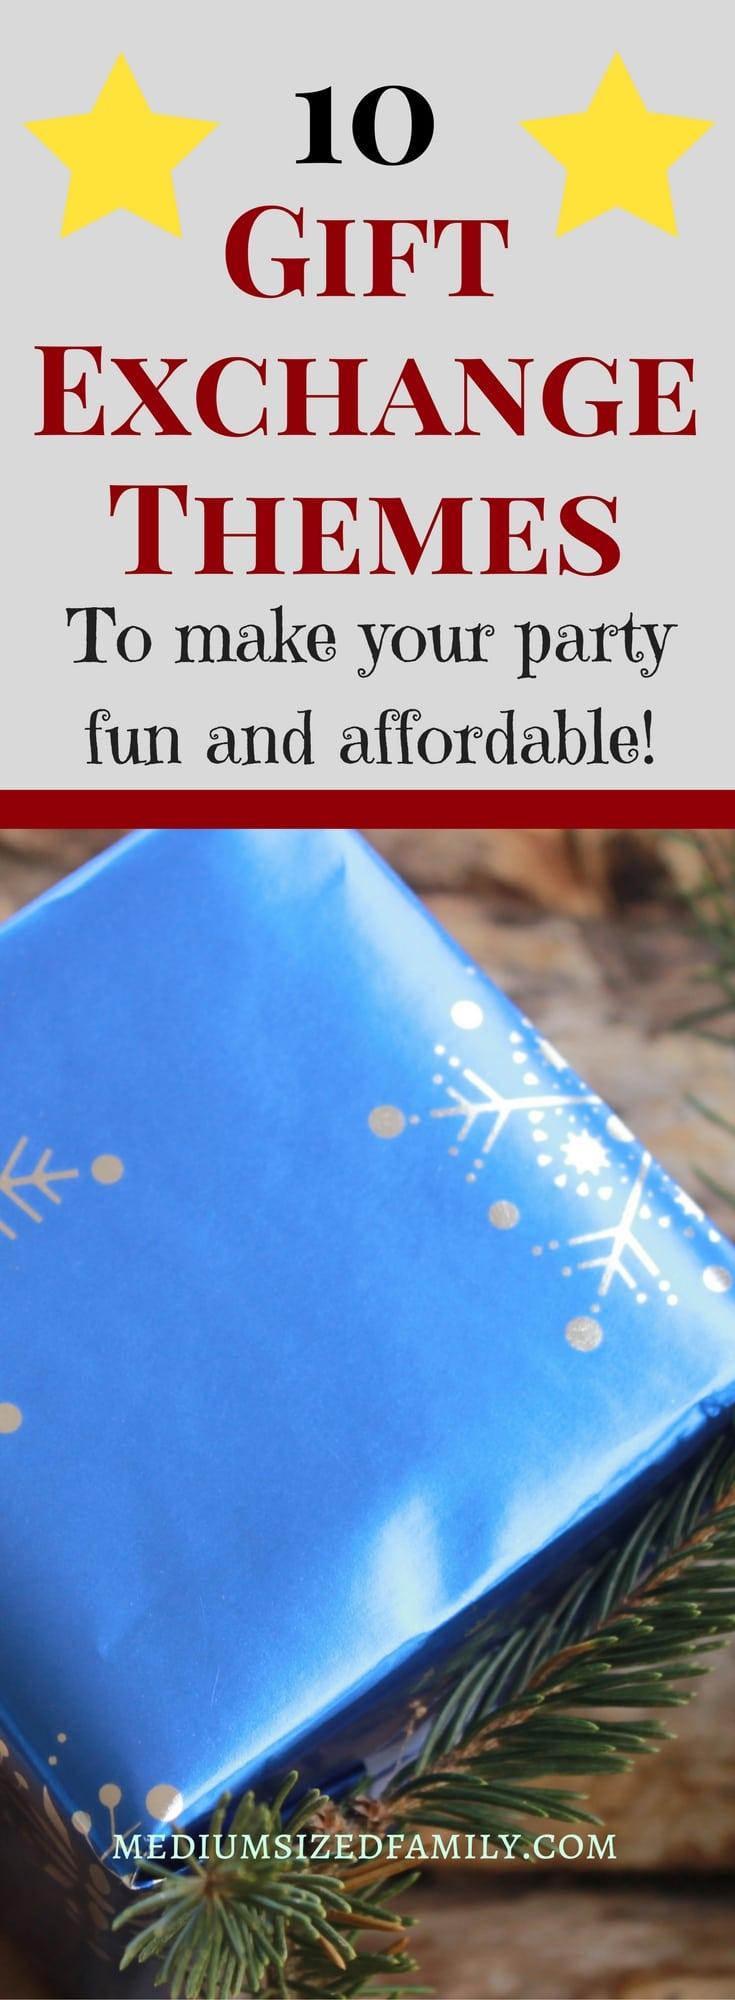 These ideas for gift exchange themes will make your Christmas party more fun than ever!